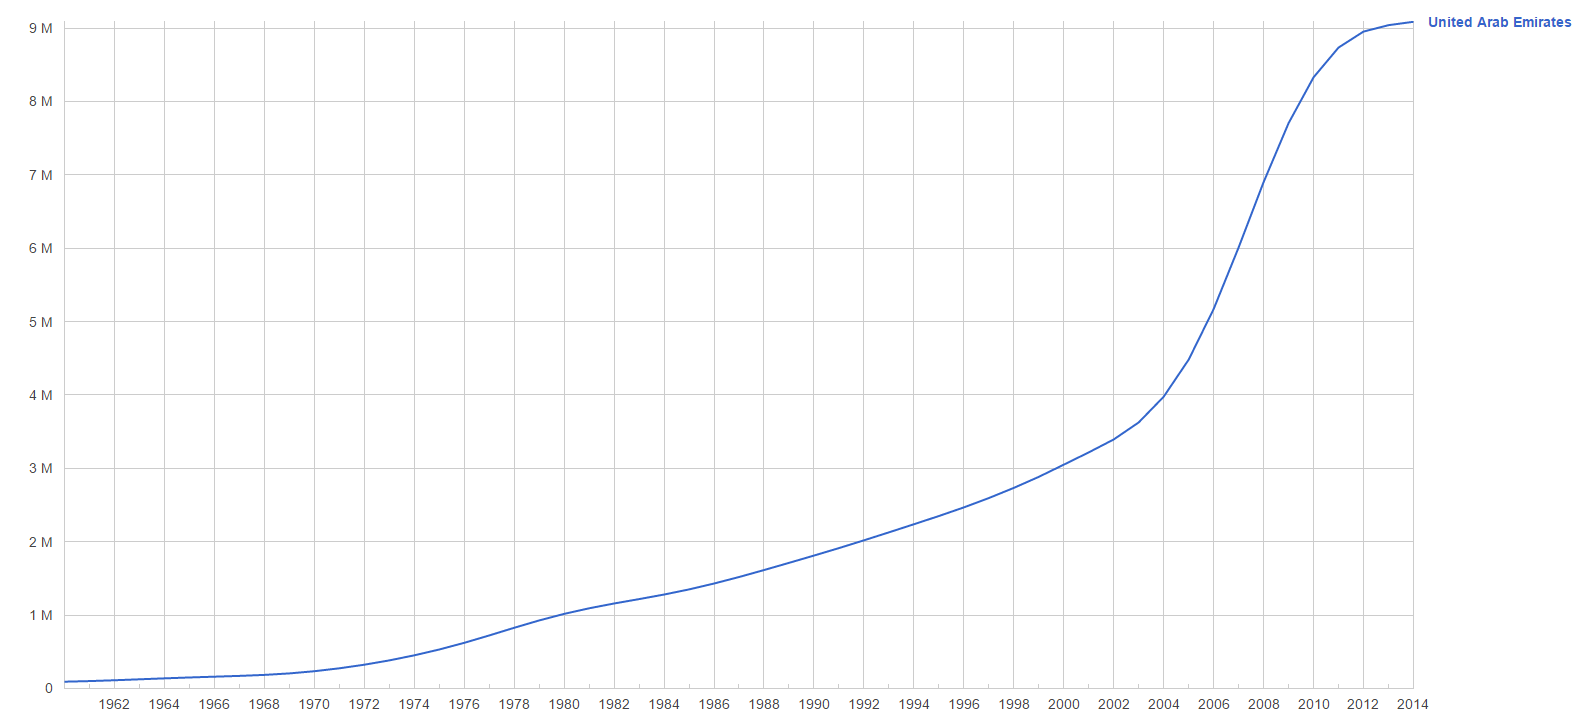 UAE Population Growth